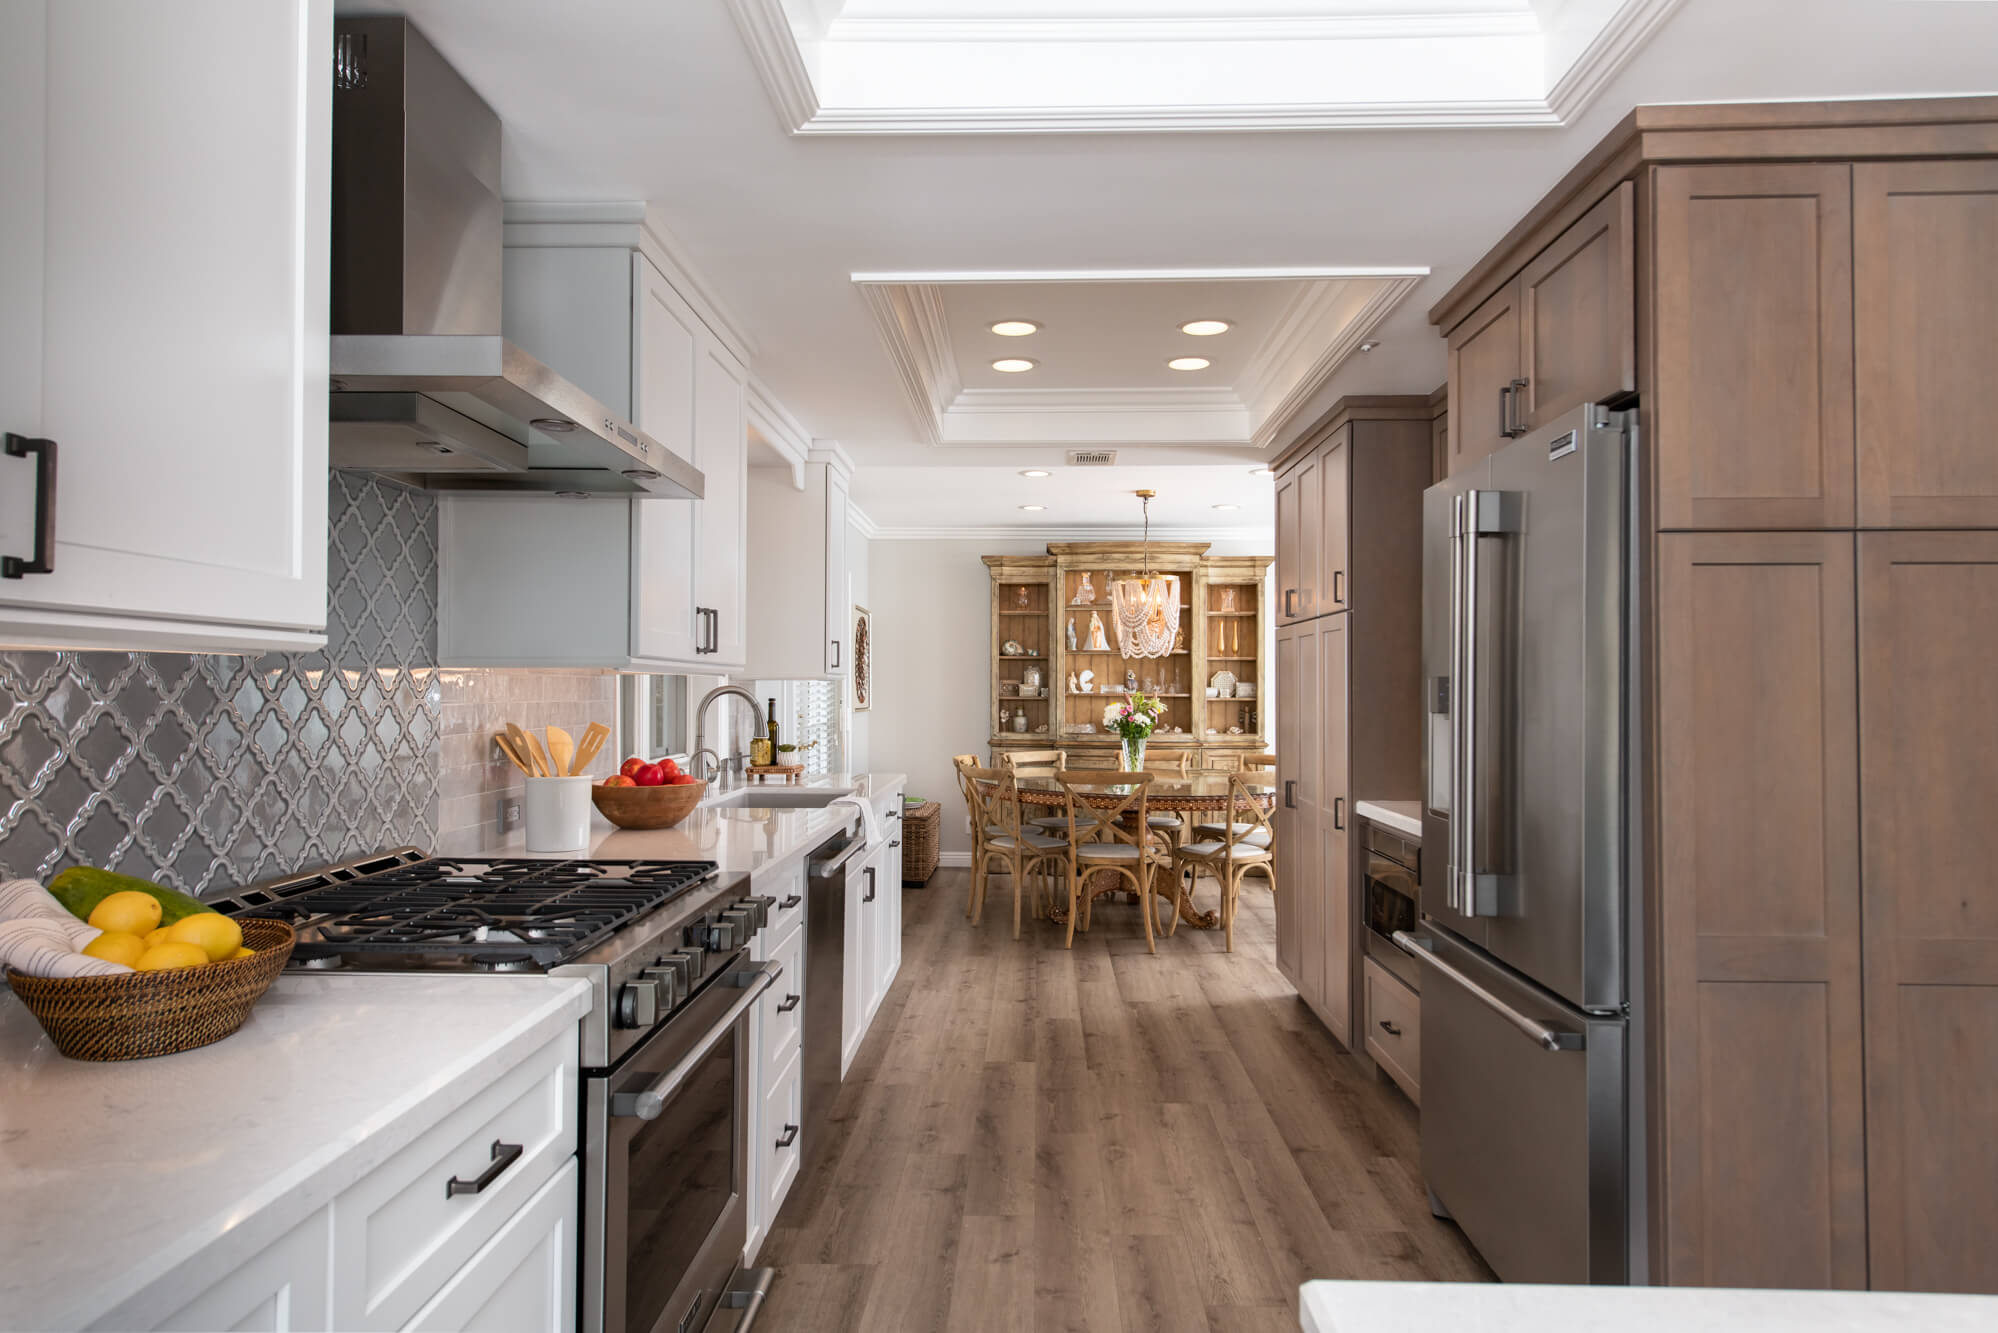 Two Toned Cabinets in Coastal Kitchen